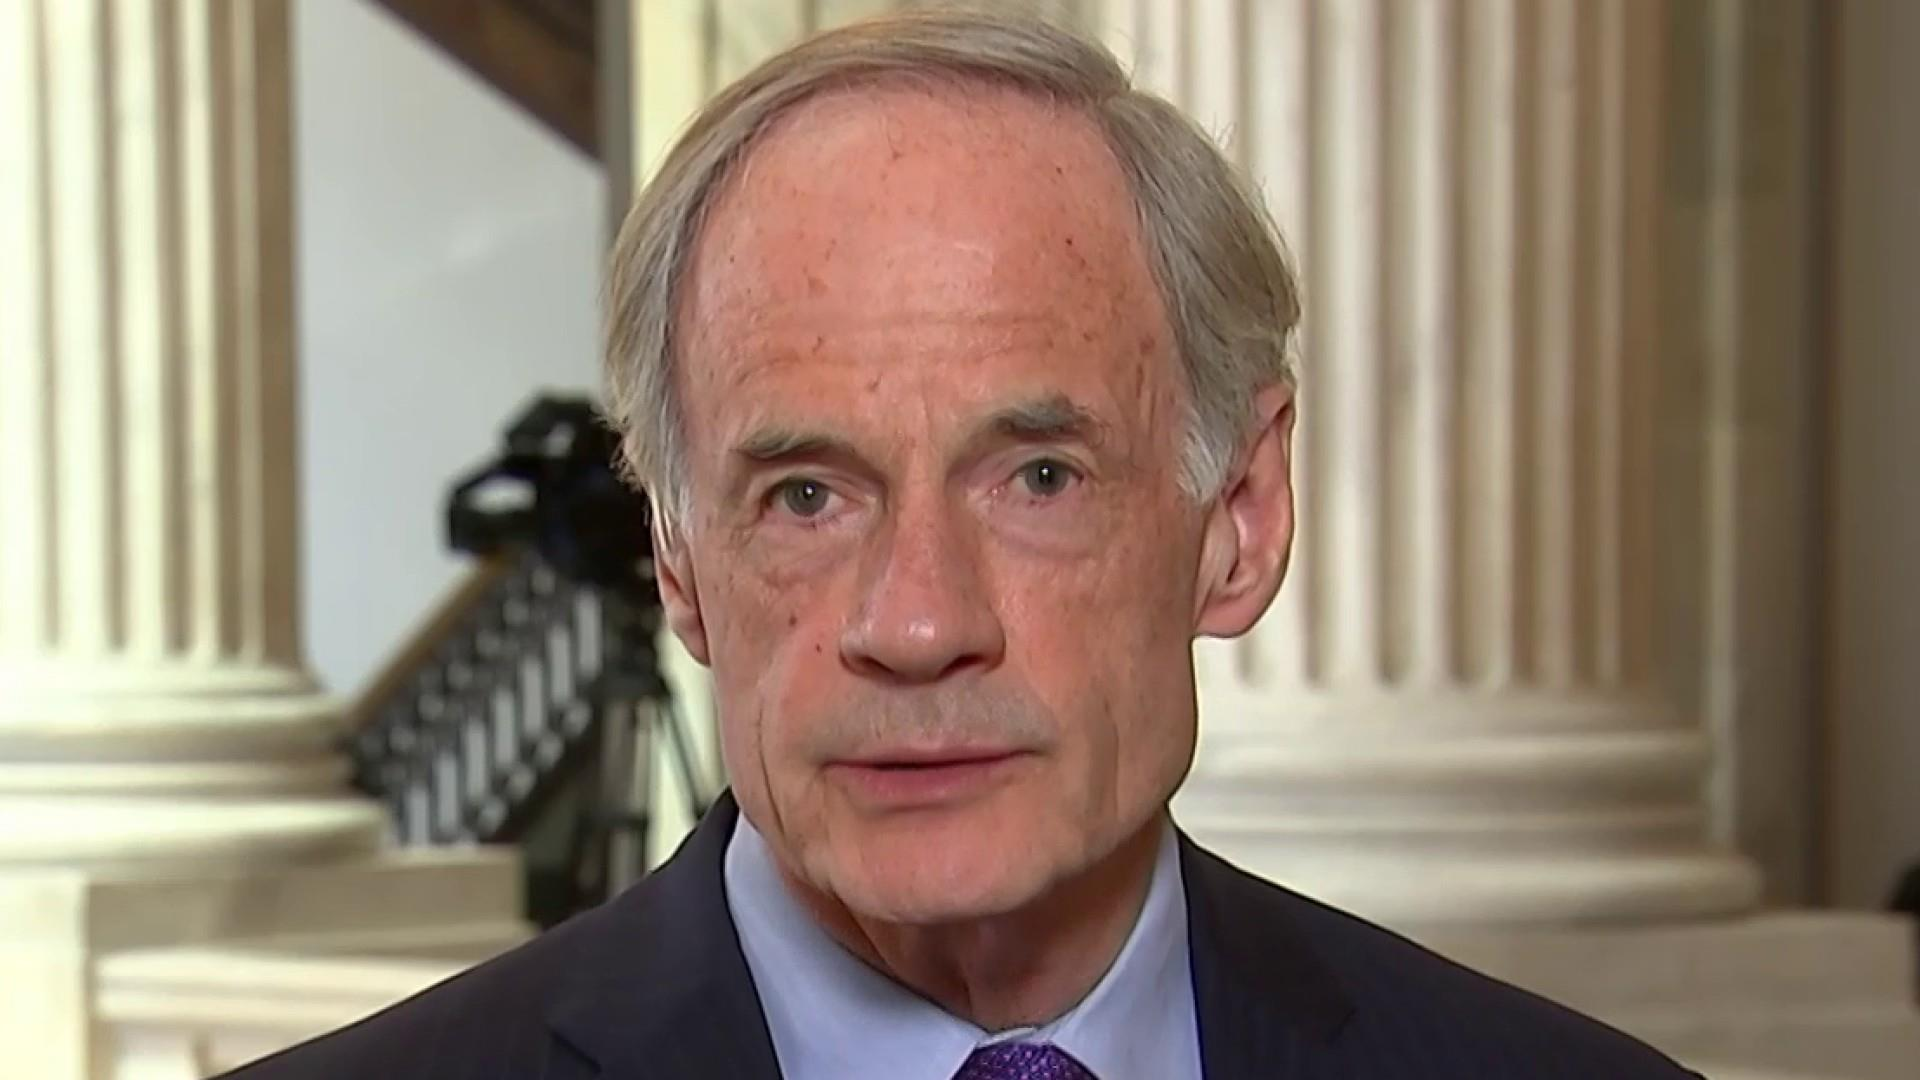 Sen. Carper (D-DE): Drugs come into this country all sorts of ways